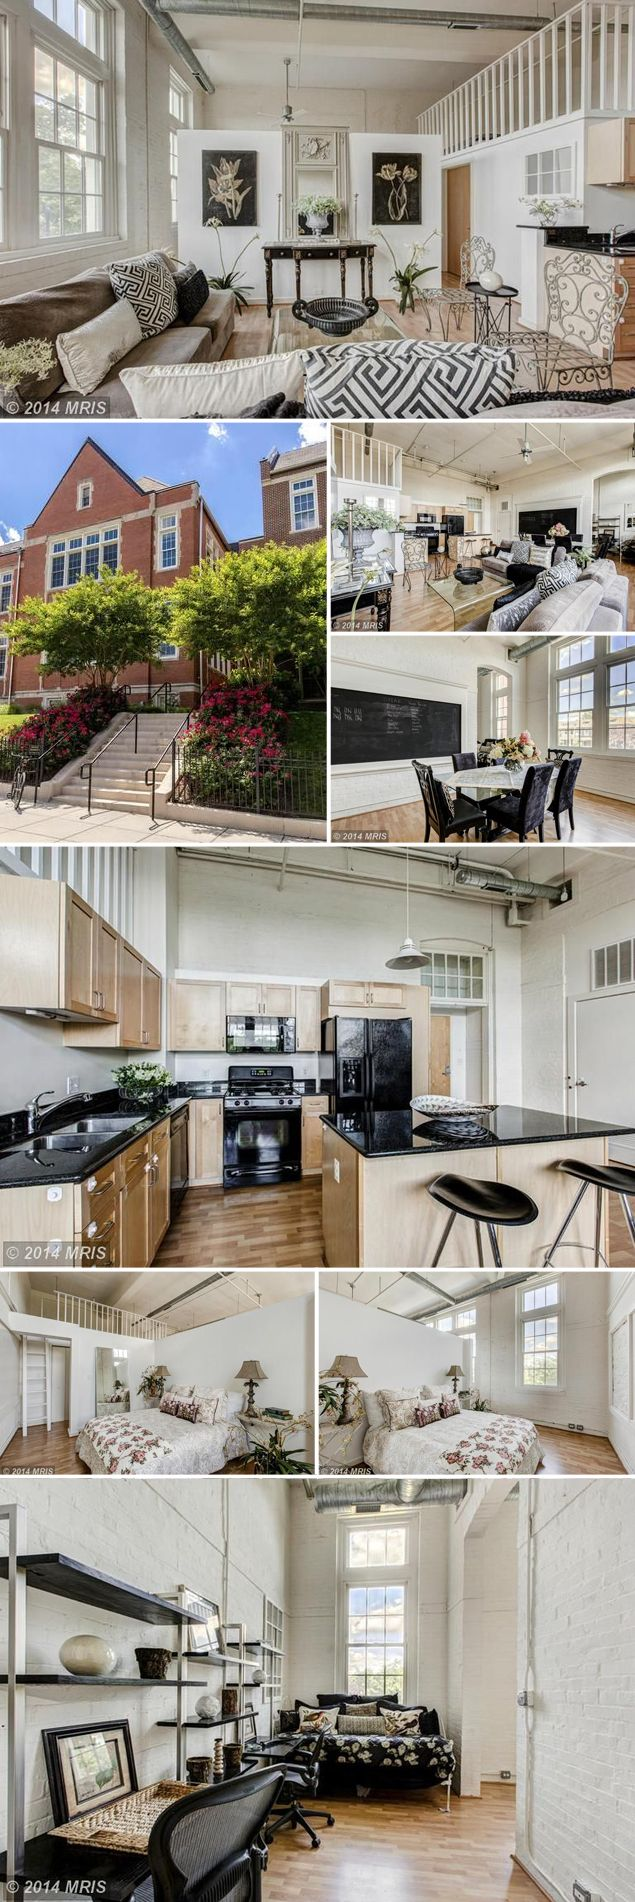 Listings We Love: Another Converted Schoolhouse Loft in Capitol Hill | Listing We Love | Washingtonian